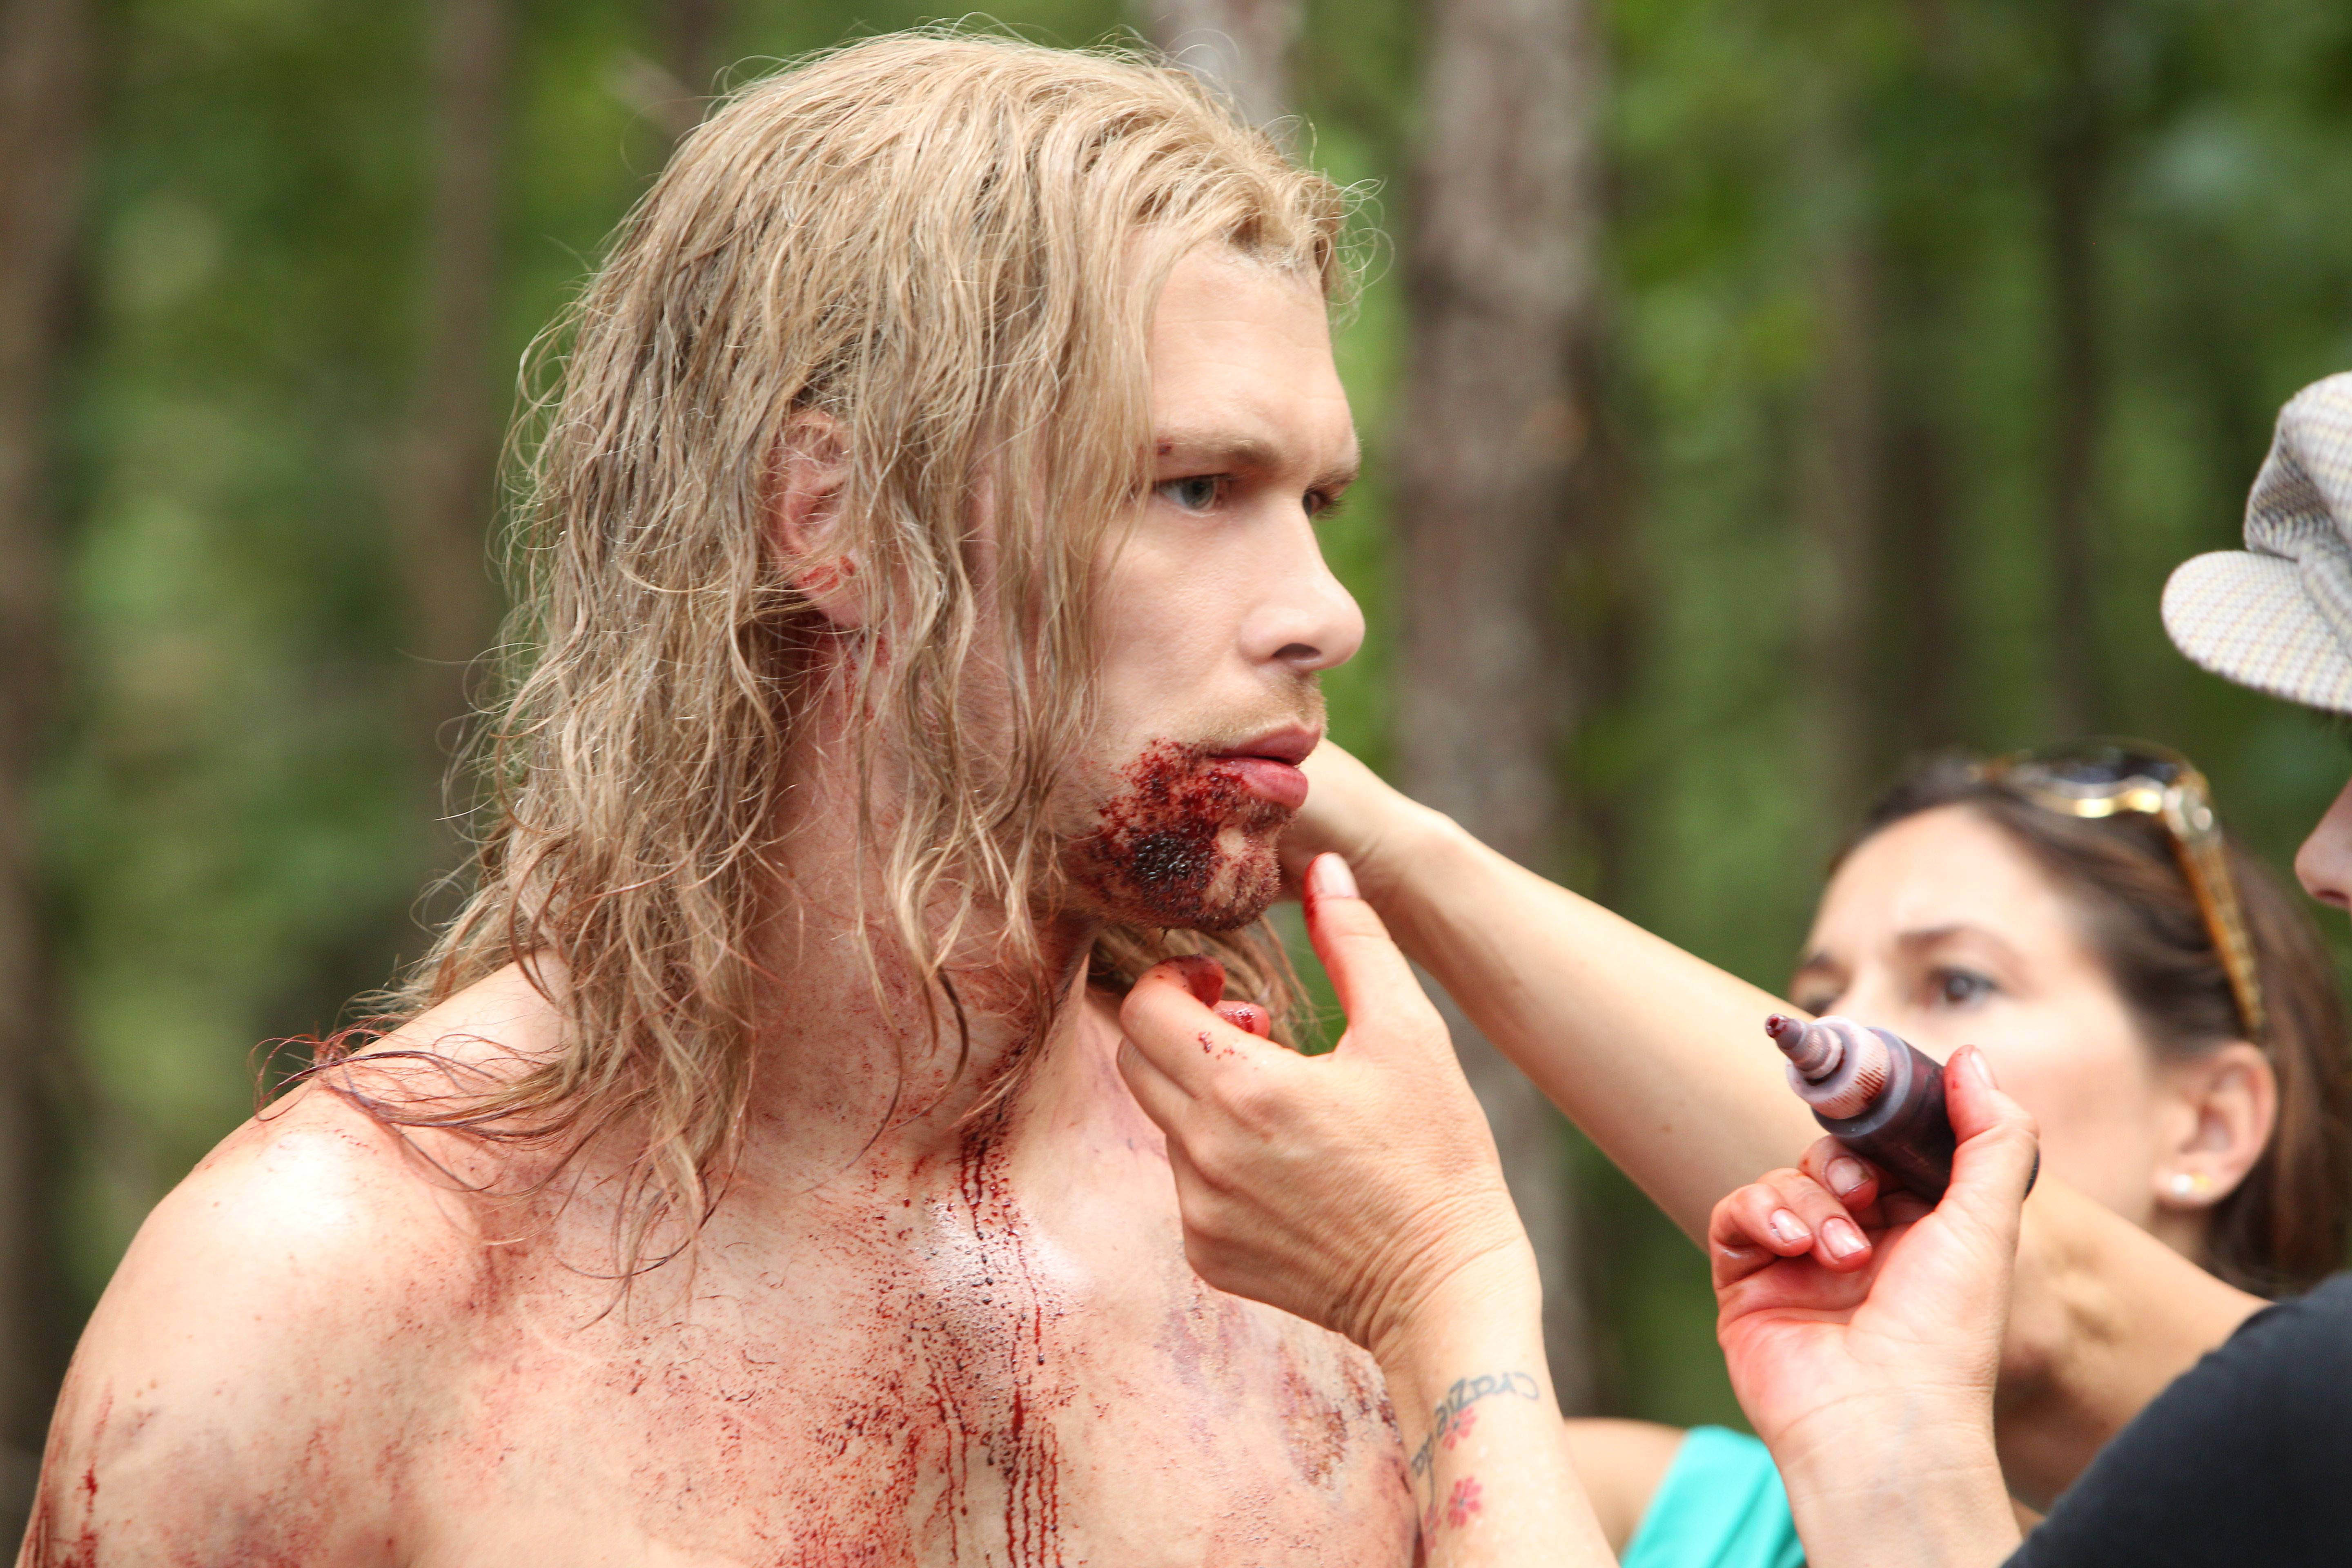 The Originals: (Fake) Blood, Knife Fights and Murder Behind the